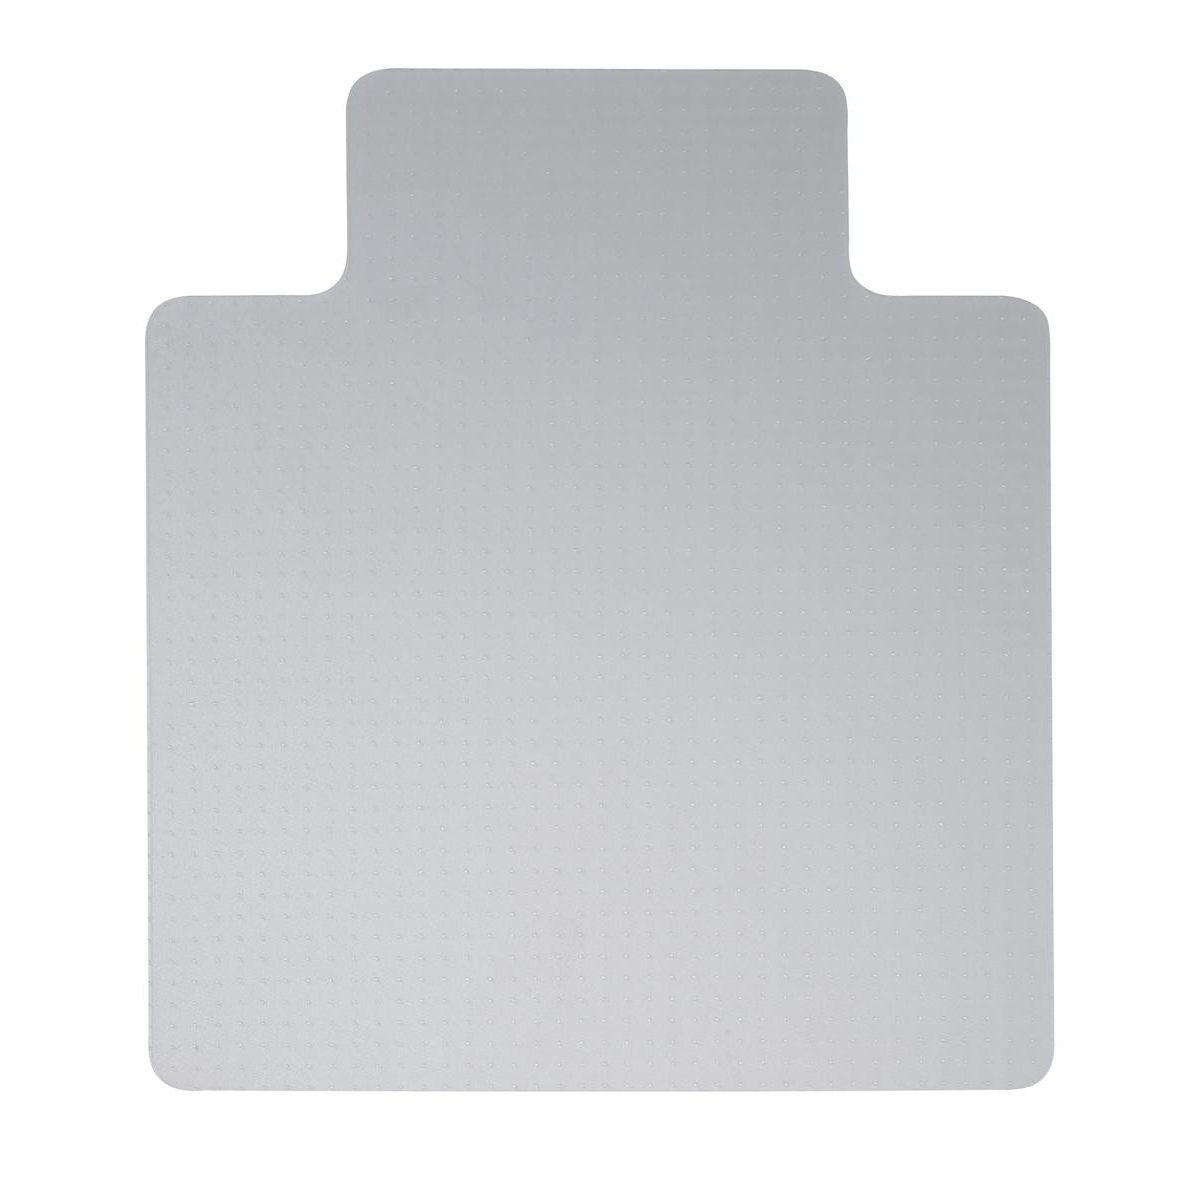 Chair mat 5 Star Office Chair Mat For Hard Floors PVC Lipped 1150x1340mm Clear/Transparent